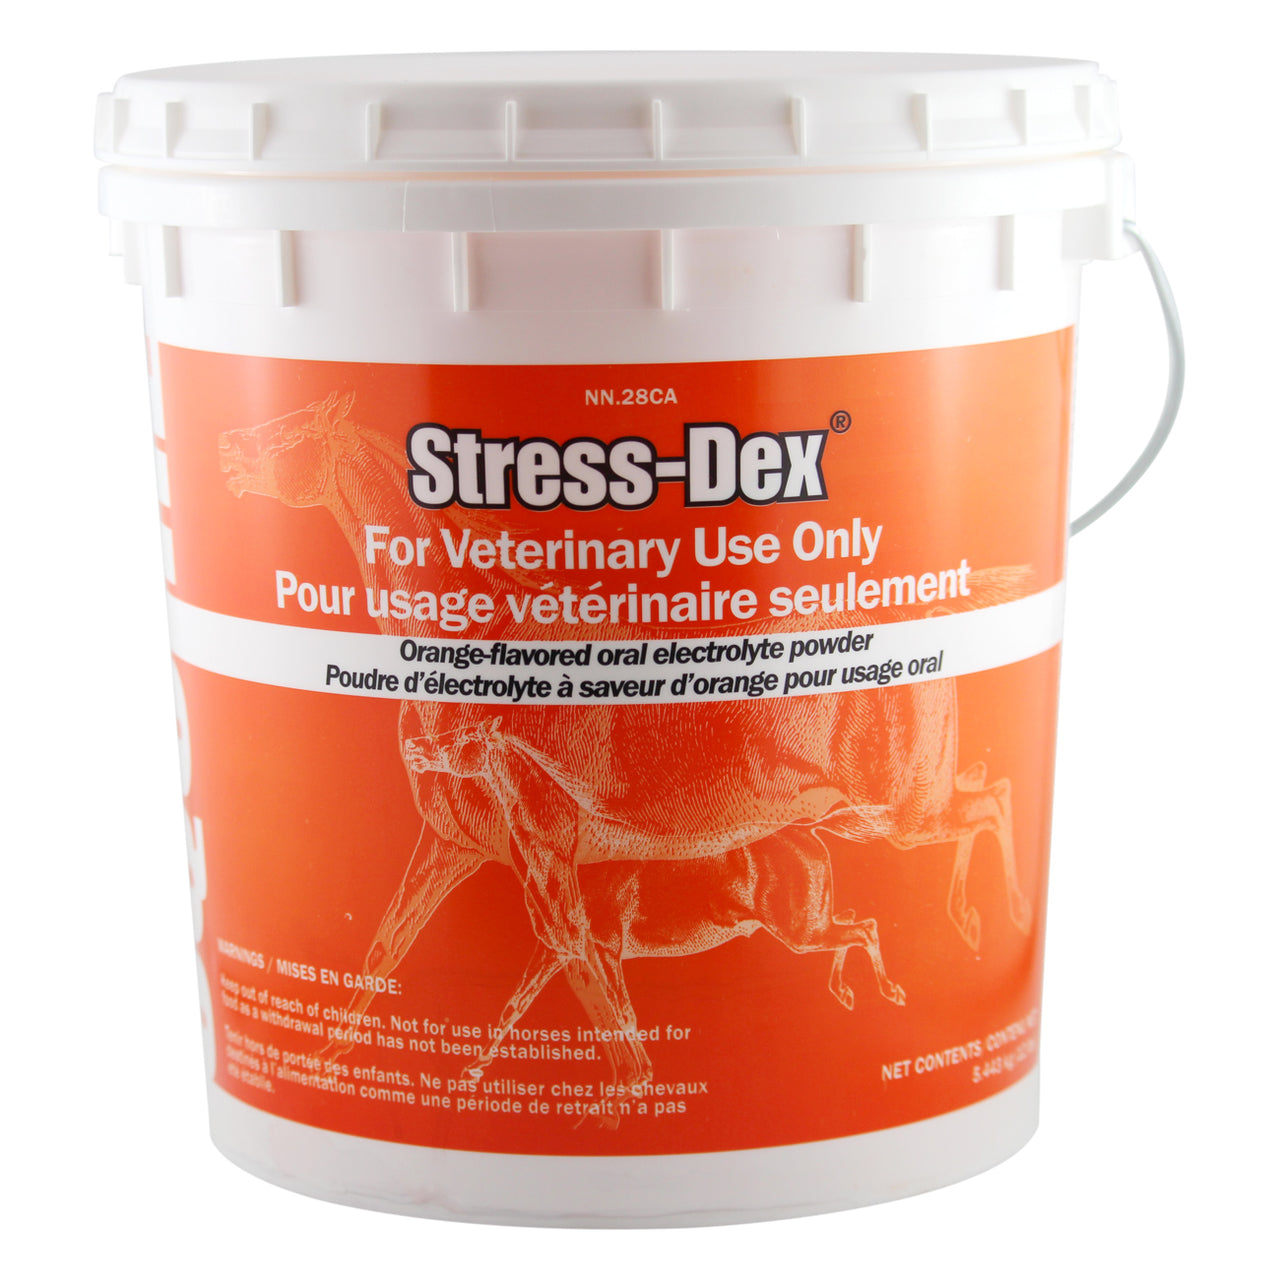 Stress-Dex Electrolyte 12Lbs - Production Animal Supplements Stress-Dex - Canada